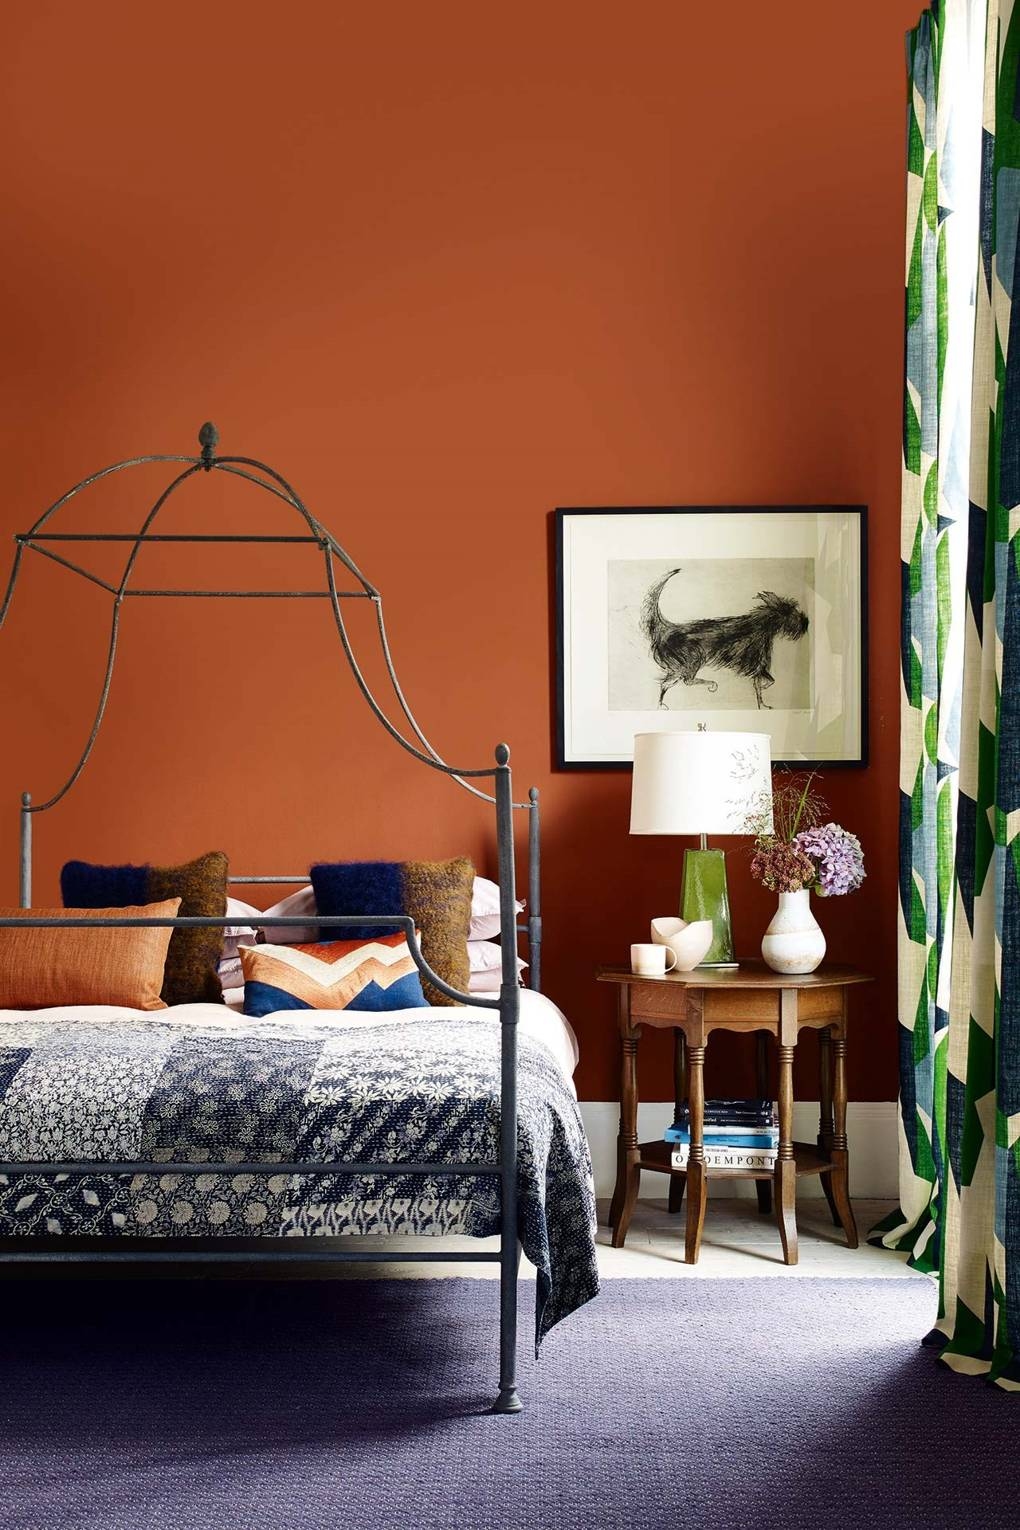 12 Dark Bedroom Ideas for a Cozy and Dramatic Look featured by top US lifestyle blog, Dreaming Loud: Terracota bedroom idea | Dark Bedroom Ideas by popular Michigan lifestyle blog, Dreaming Loud: image of a bedroom with terra cotta walls.